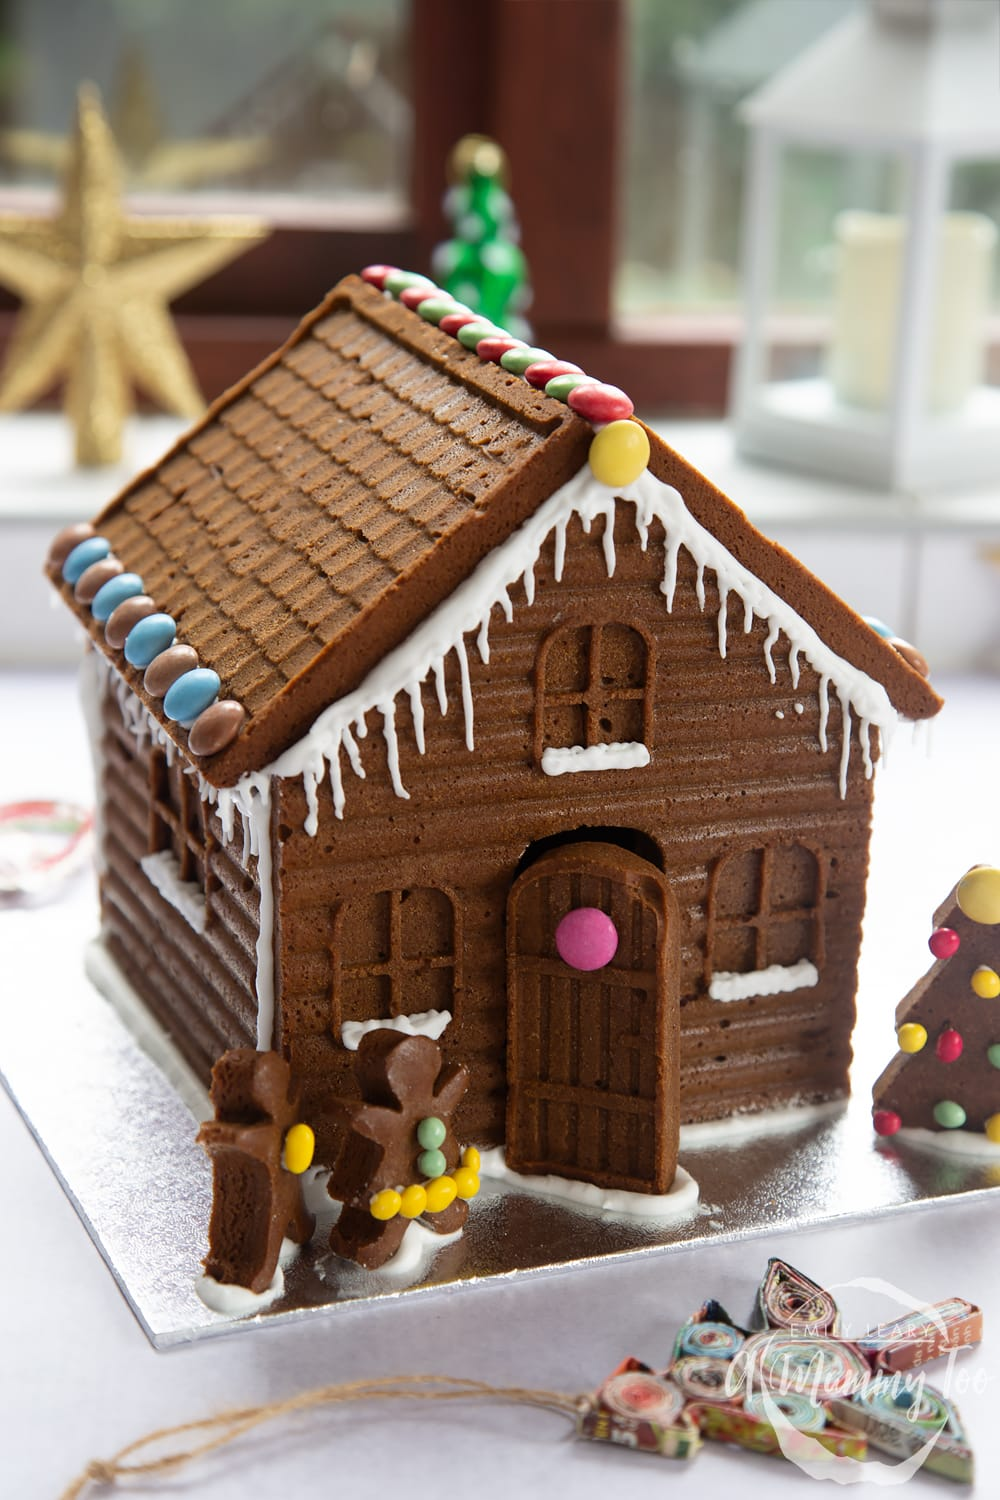 A detailed gingerbread house on a silver board. The house is decorated with smarties and mini chocolate beans.